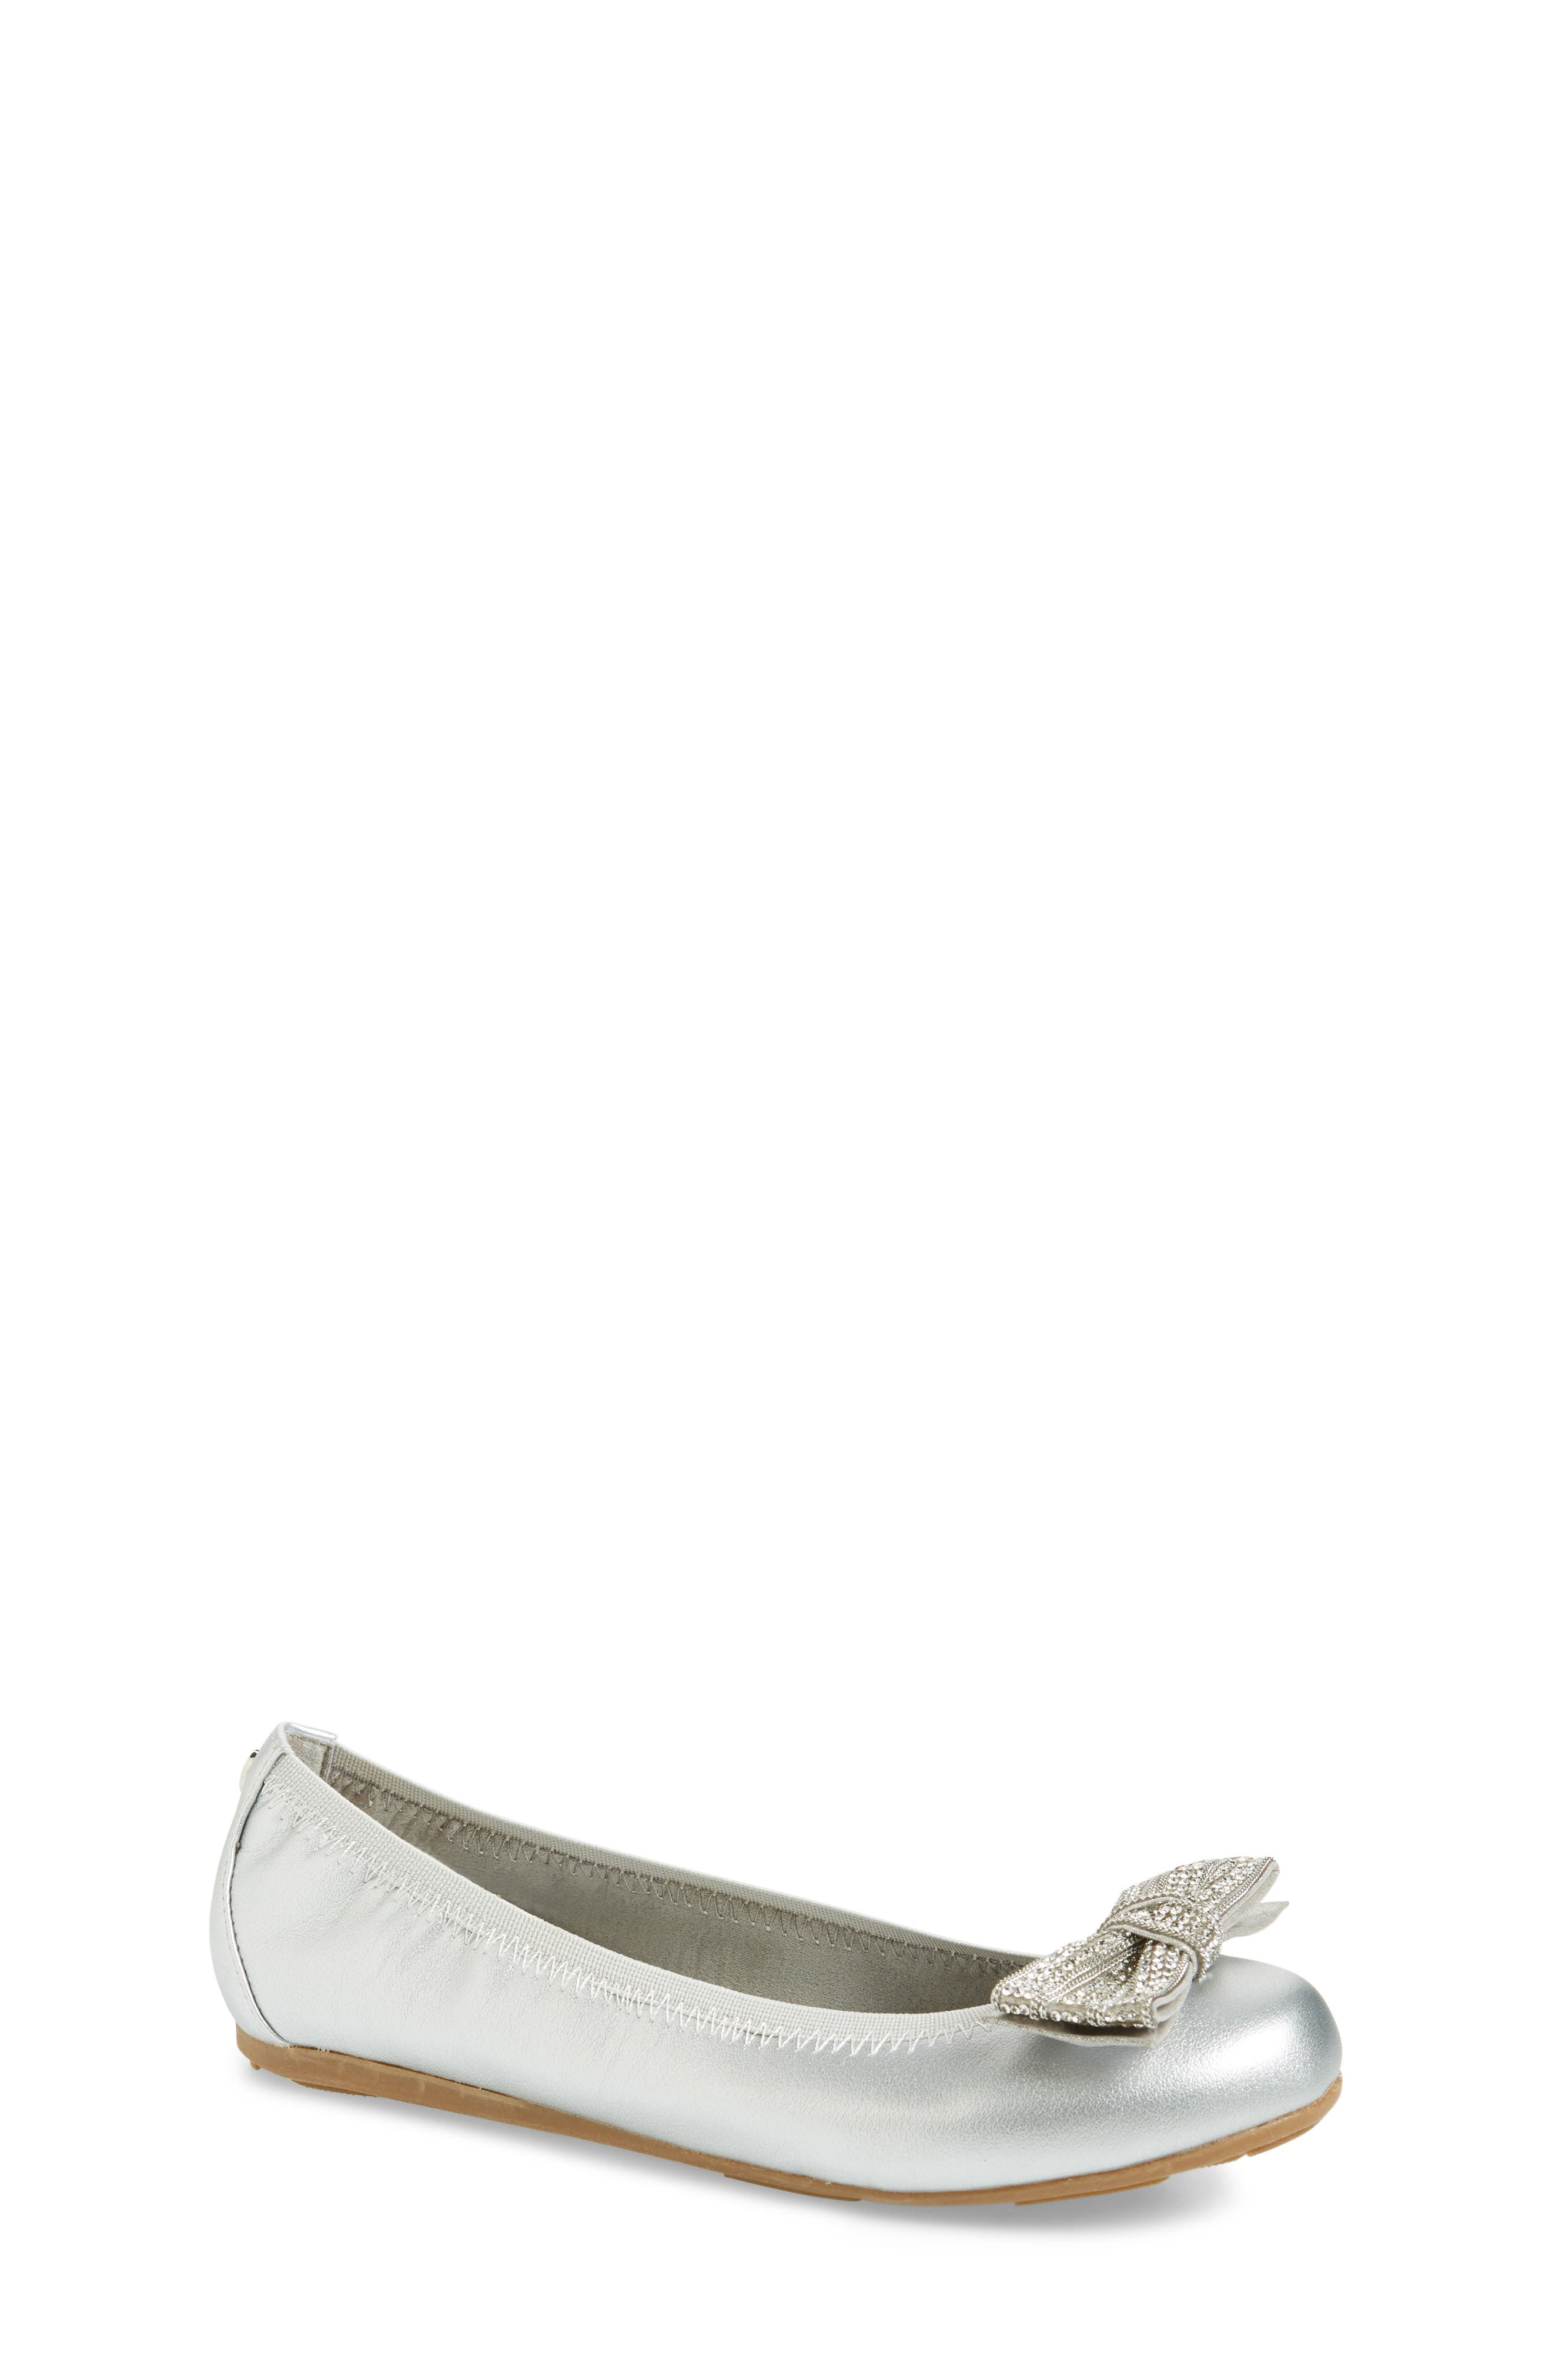 Fannie Embellished Bow Ballet Flat,                         Main,                         color, Silver